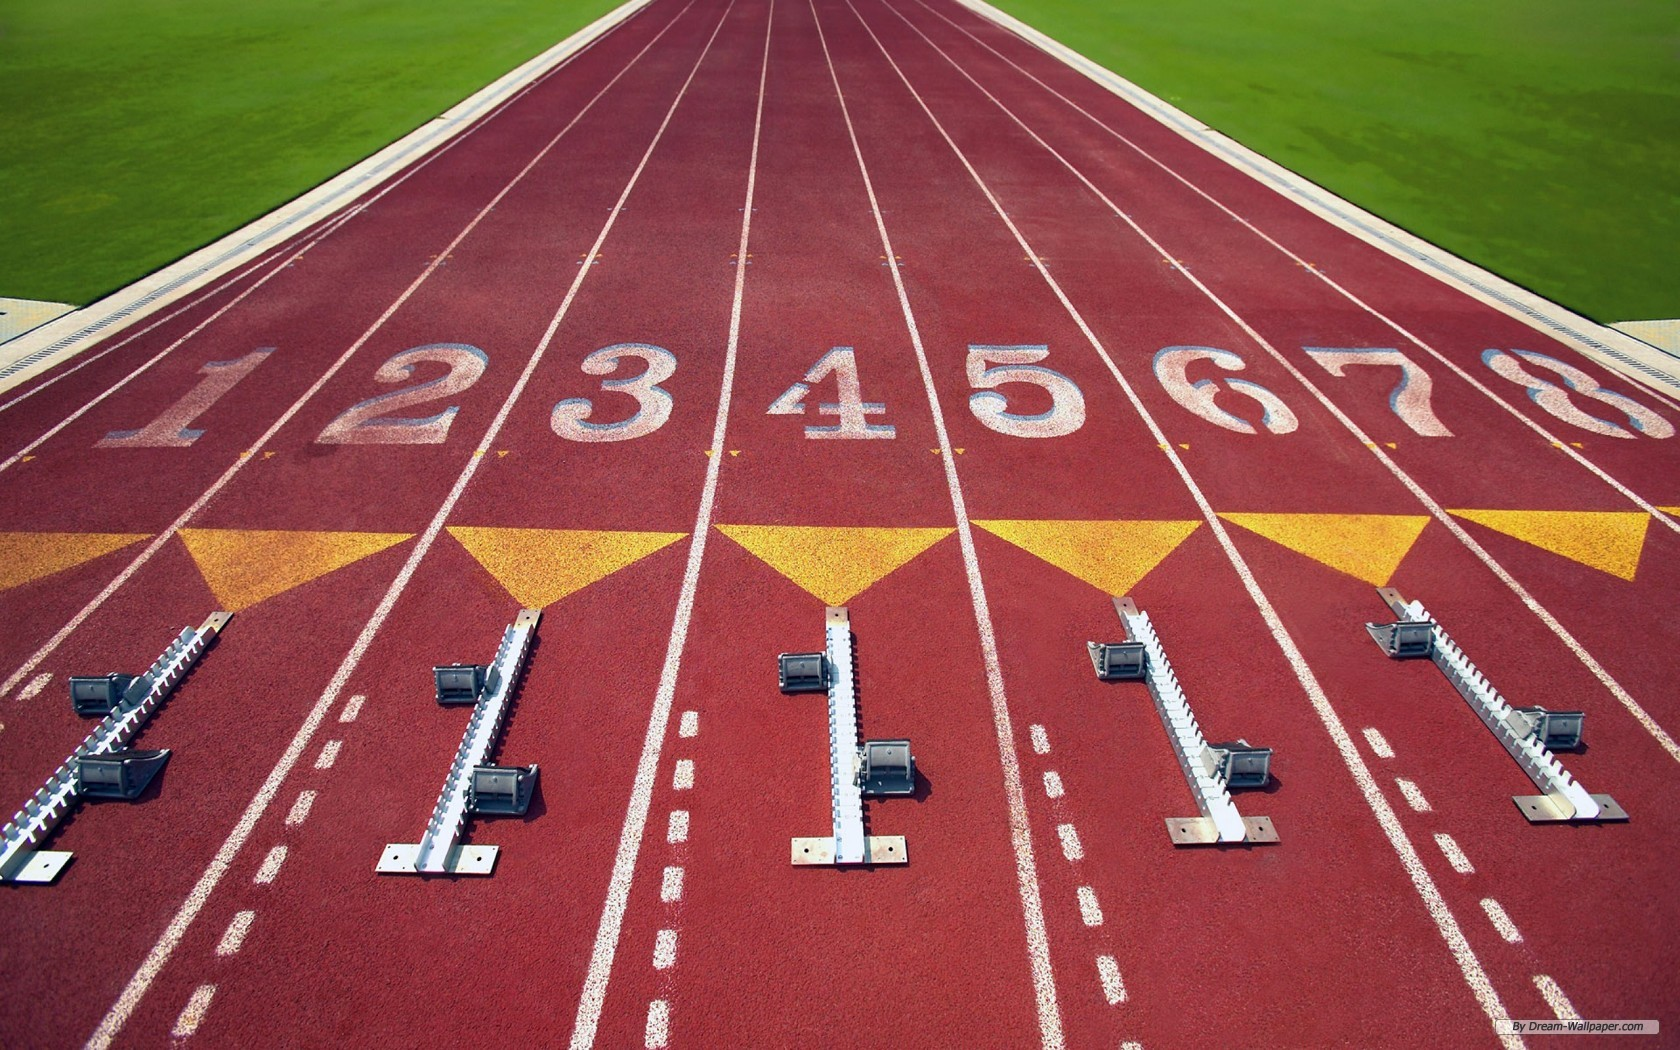 71 Track And Field Wallpapers On Wallpapersafari